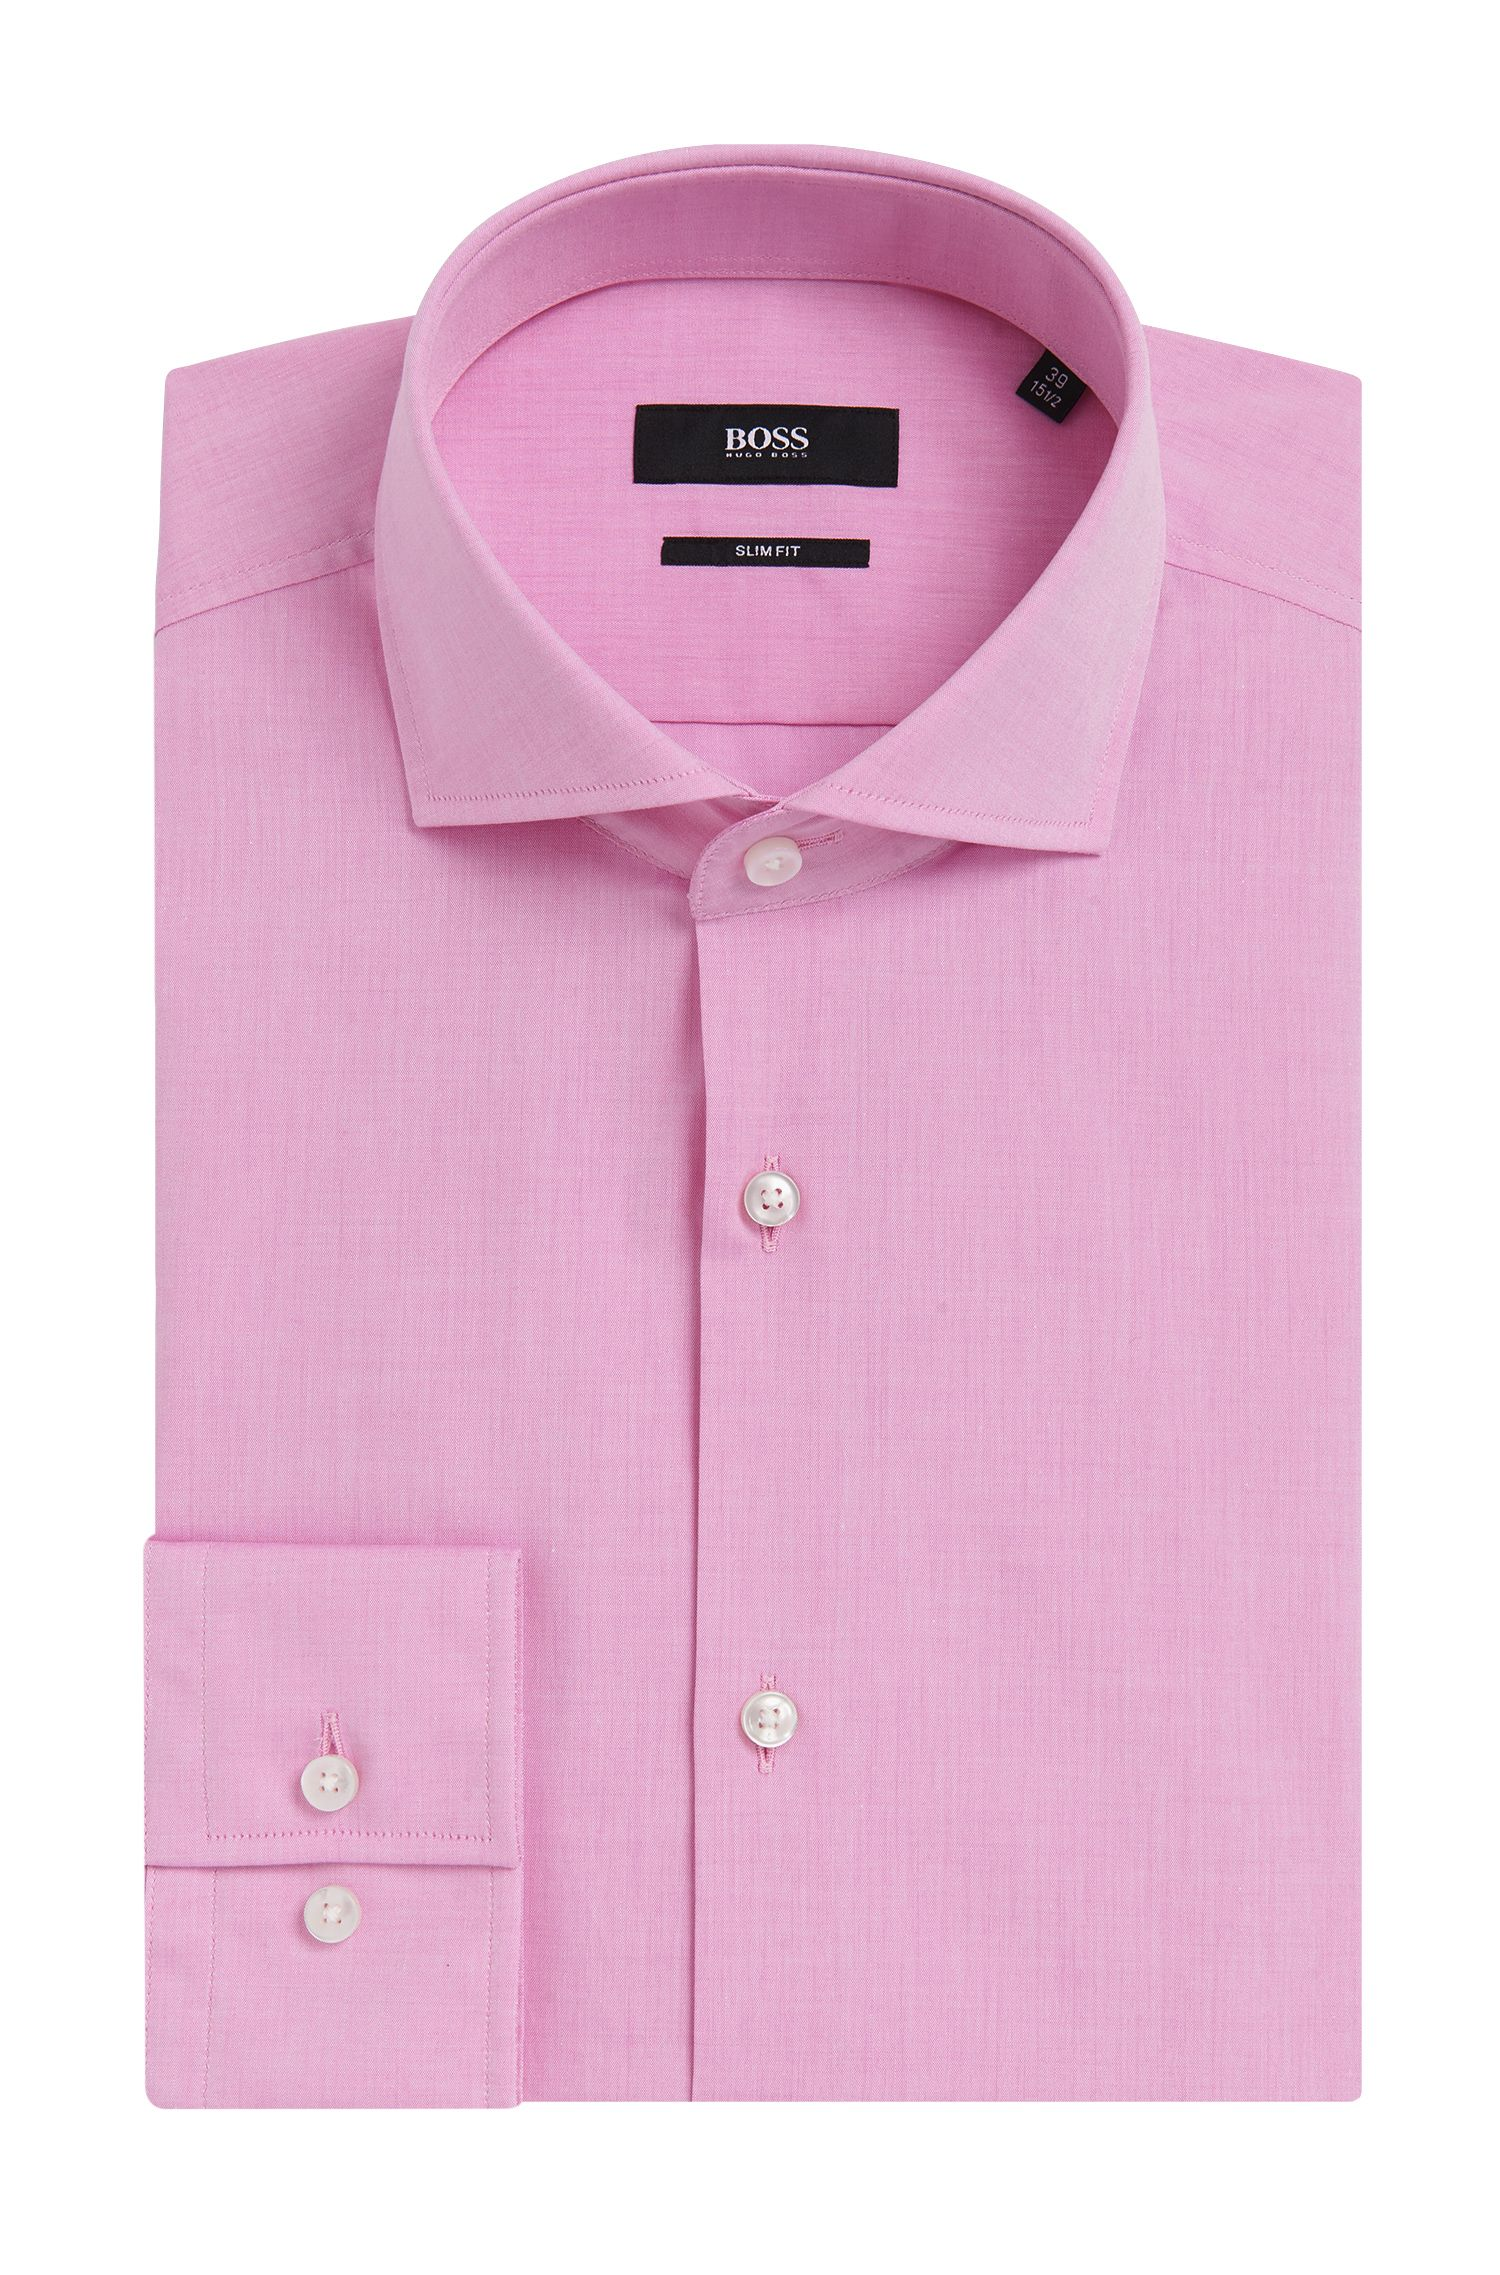 Yarn-Dyed Italian Cotton Dress Shirt, Slim Fit | Jason